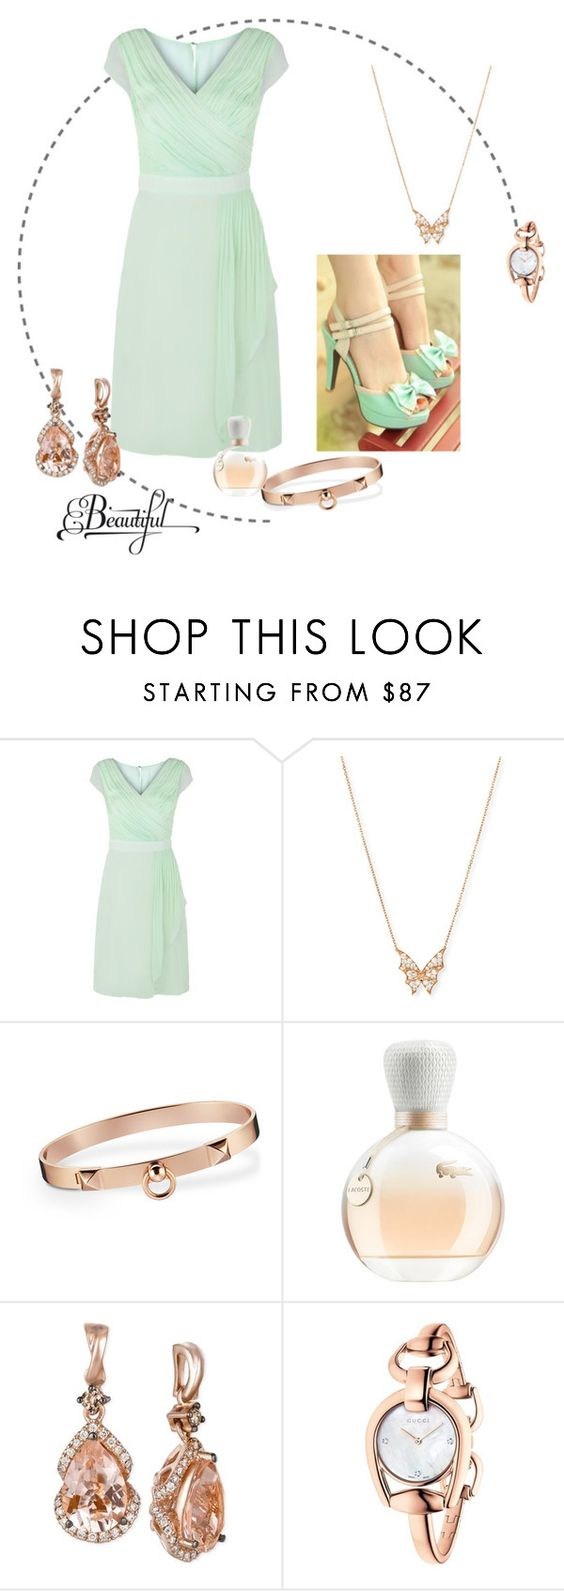 """Take"" by sasane ❤ liked on Polyvore featuring Kaliko, Stephen Webster, Lacoste, LE VIAN and Gucci"